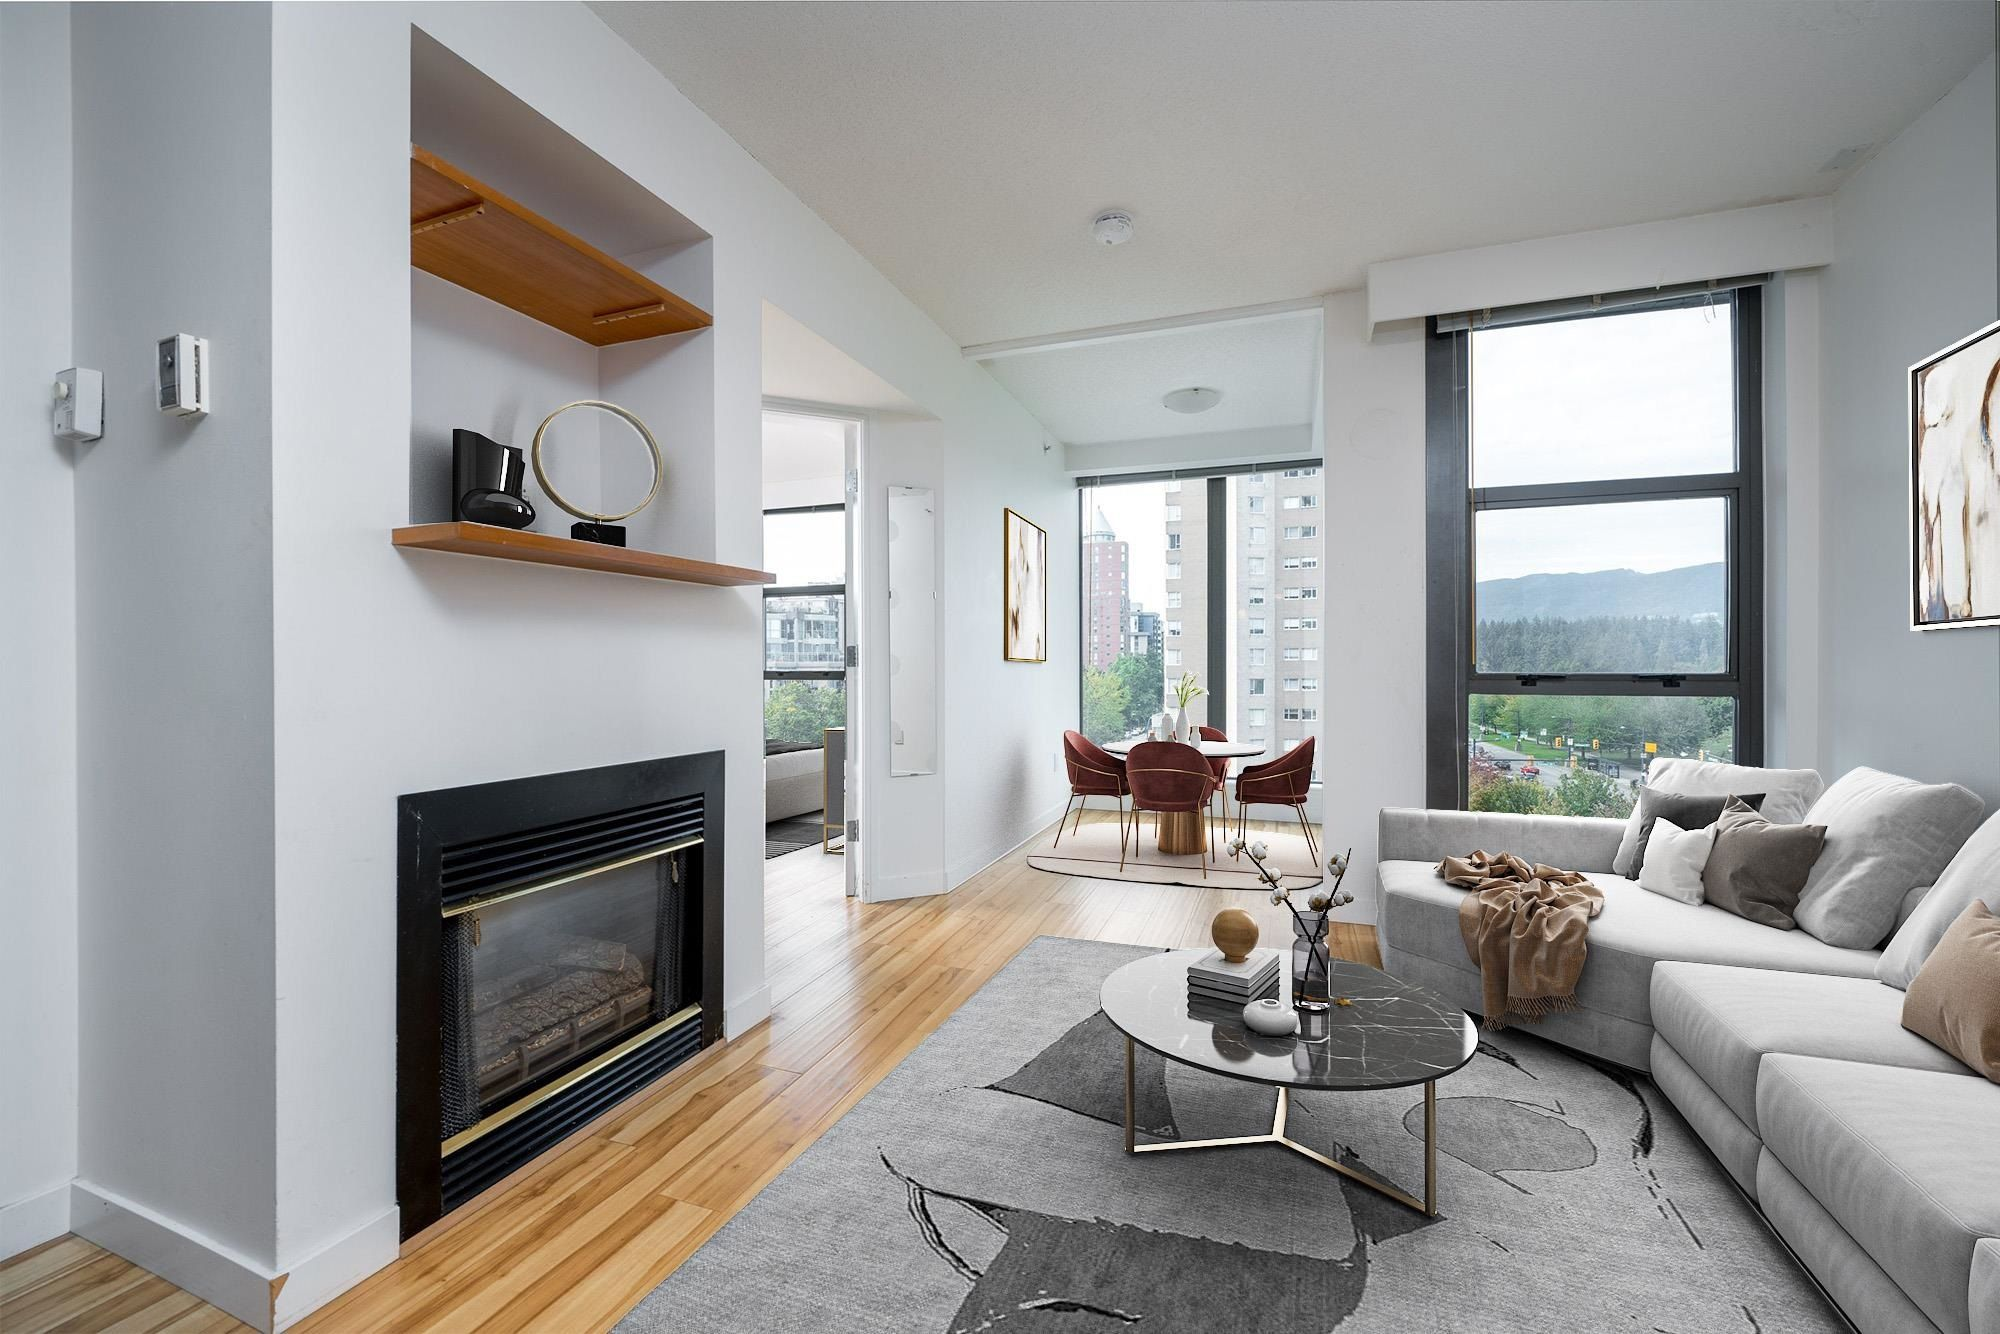 """Main Photo: 705 1723 ALBERNI Street in Vancouver: West End VW Condo for sale in """"THE PARK"""" (Vancouver West)  : MLS®# R2622898"""